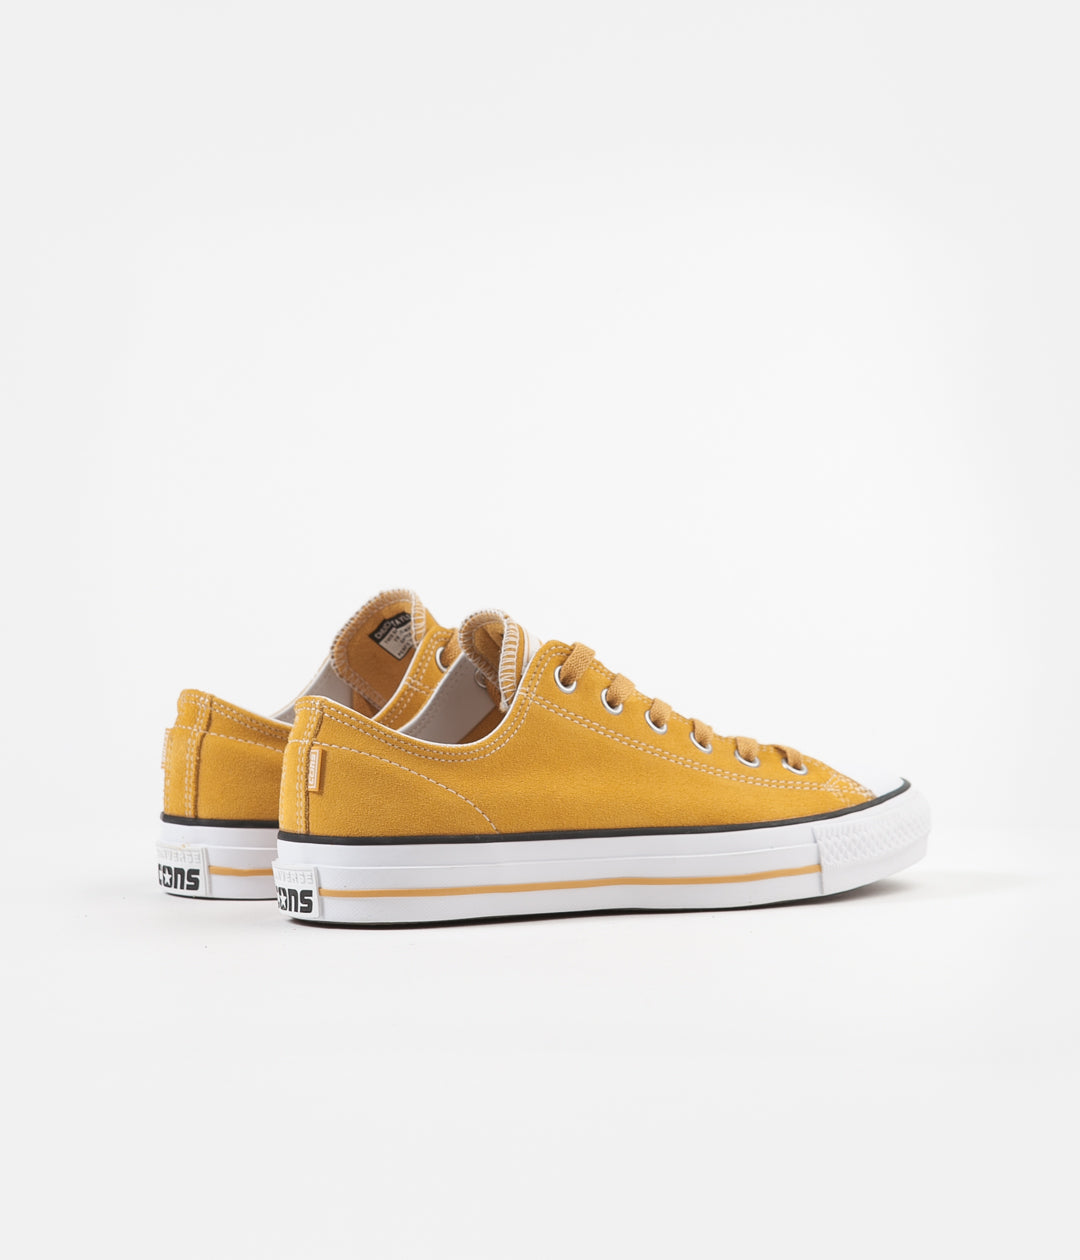 Converse CTAS Pro Ox Shoes - Sunflower Gold / White / Sunflower